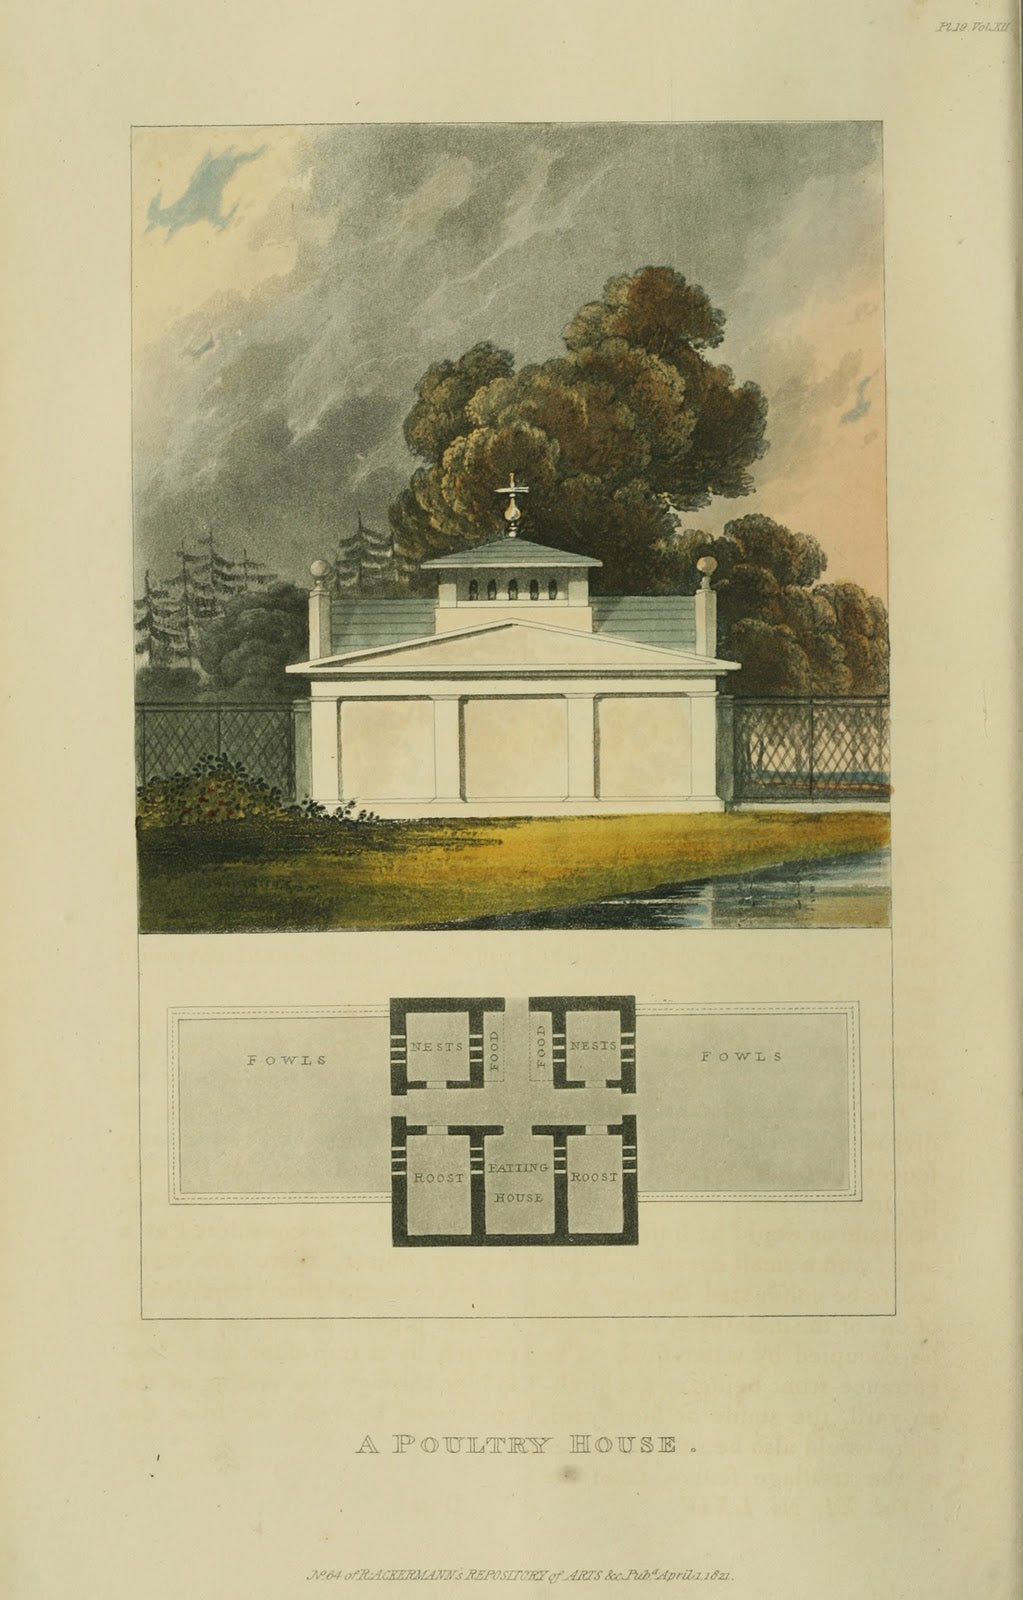 Ackermann's Repository - 1821 Poultry House plate 19